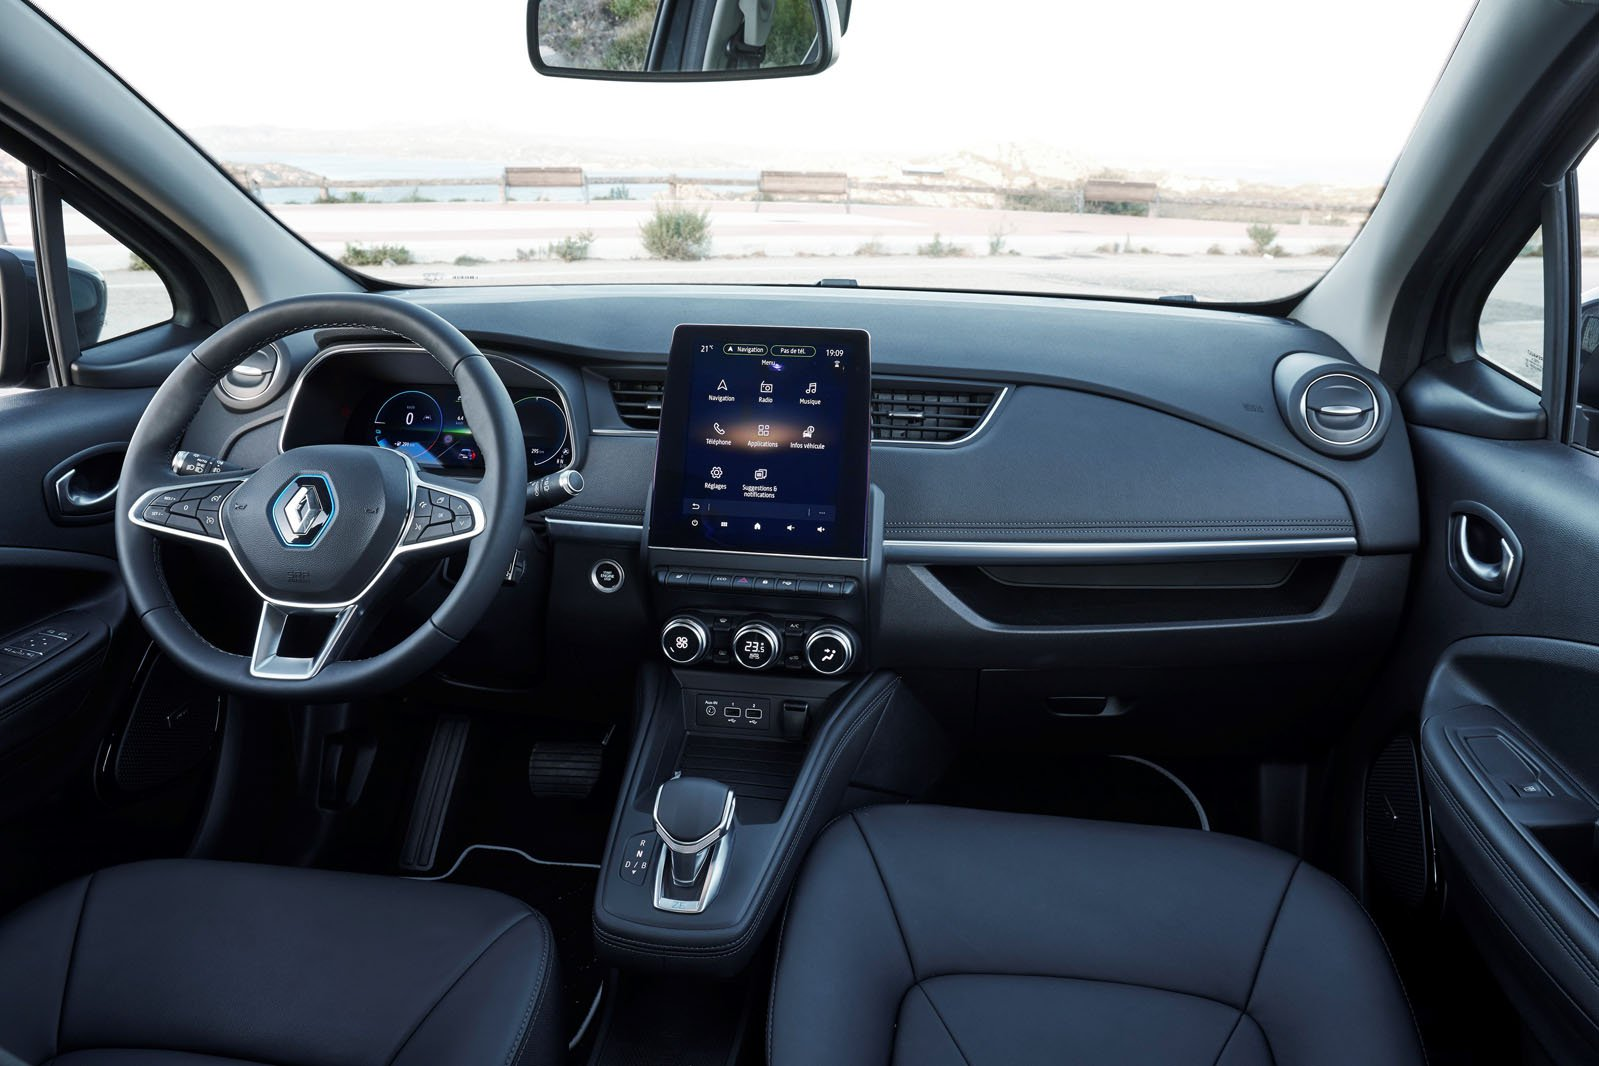 Renault Zoe 2019 LHD dashboard